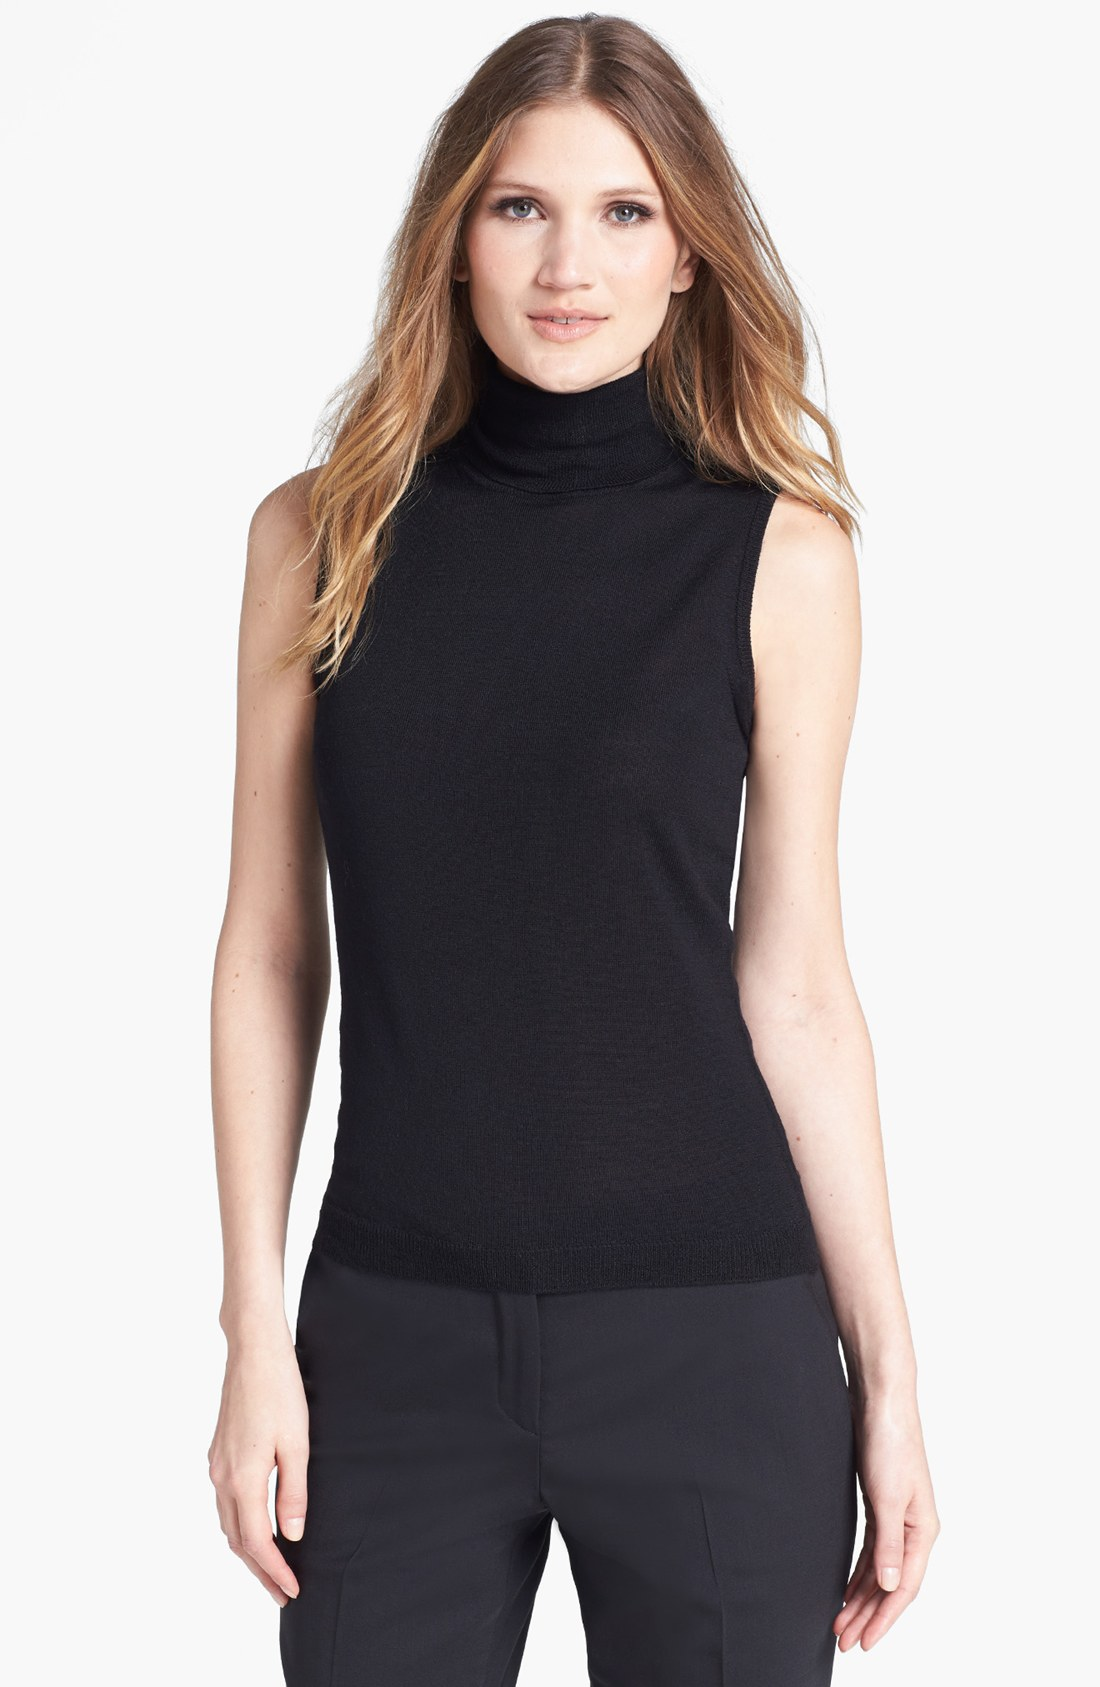 Merino Turtleneck. Add a review. We're really pleased you'd like to write a product review. Please note the following terms and conditions: We intend to publish all reviews, whether good or bad, but we reserve the right not to publish any review.